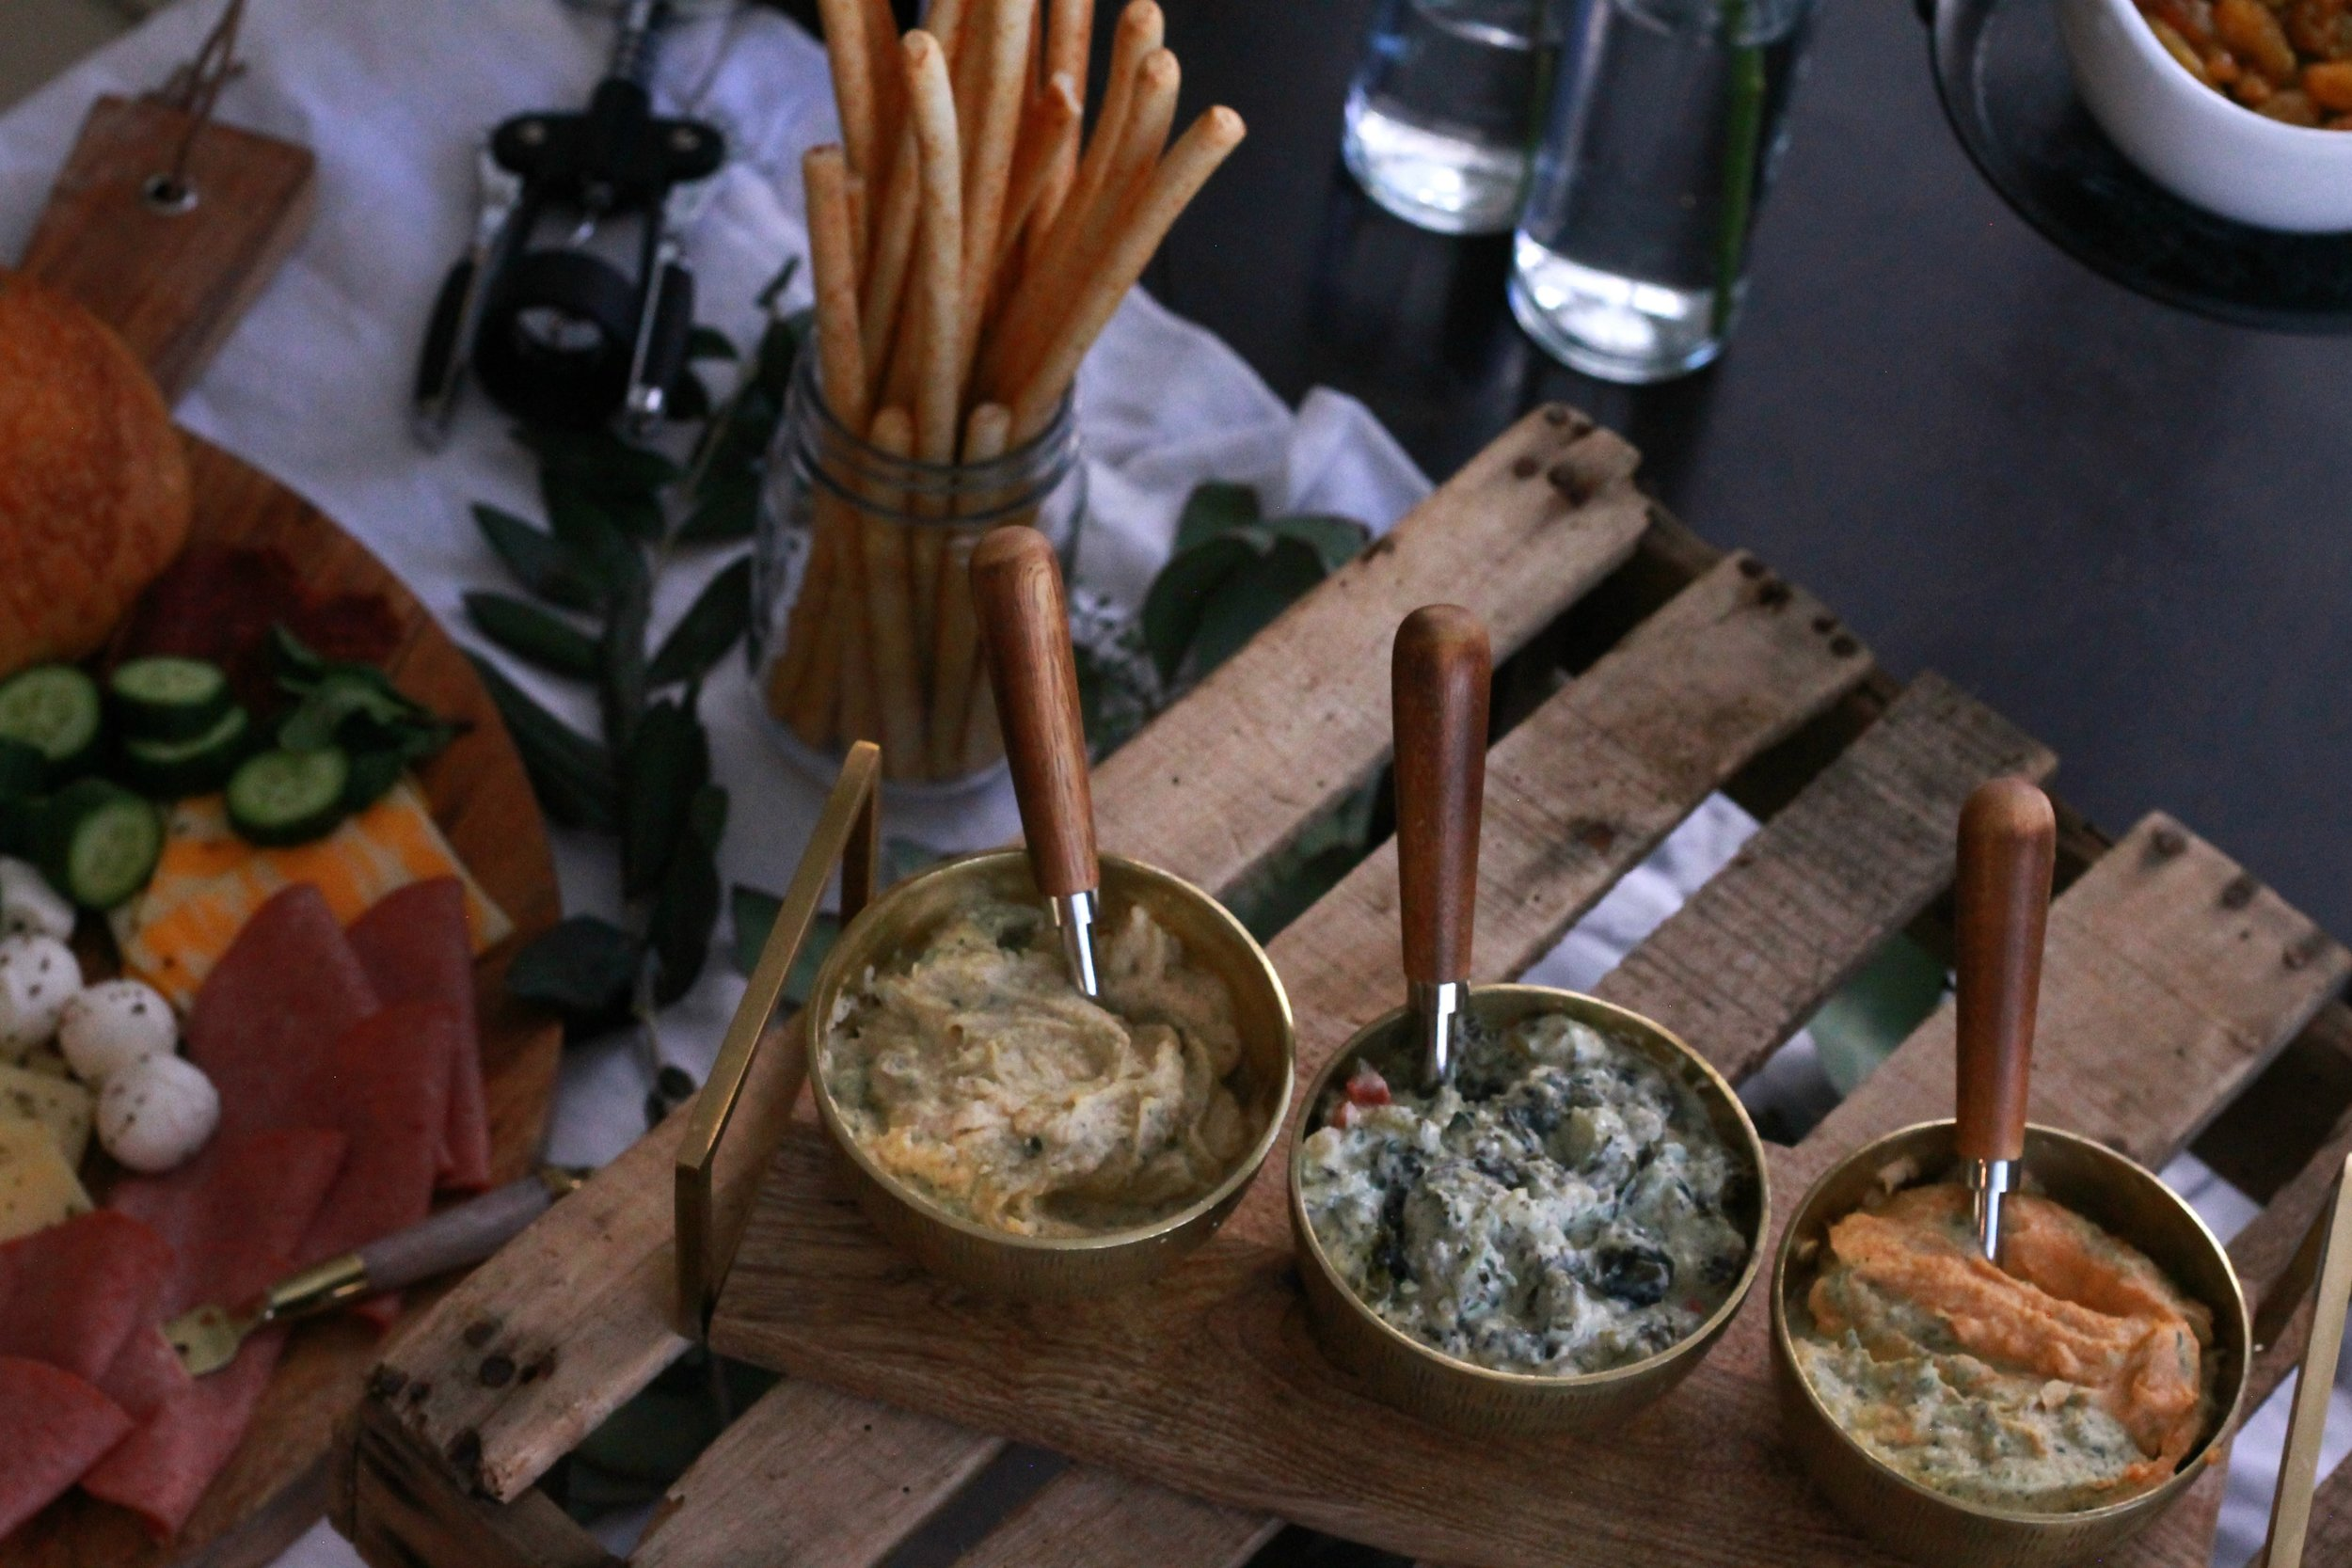 Bread Sticks-Rustic Food Ideas-Rose-Wine Night-Cheese and Cracker Ideas-Girls Night In-Cheese Cracker and Wine Night-Cheese Board Ideas-www.SugarPartiesLA.com.jpg